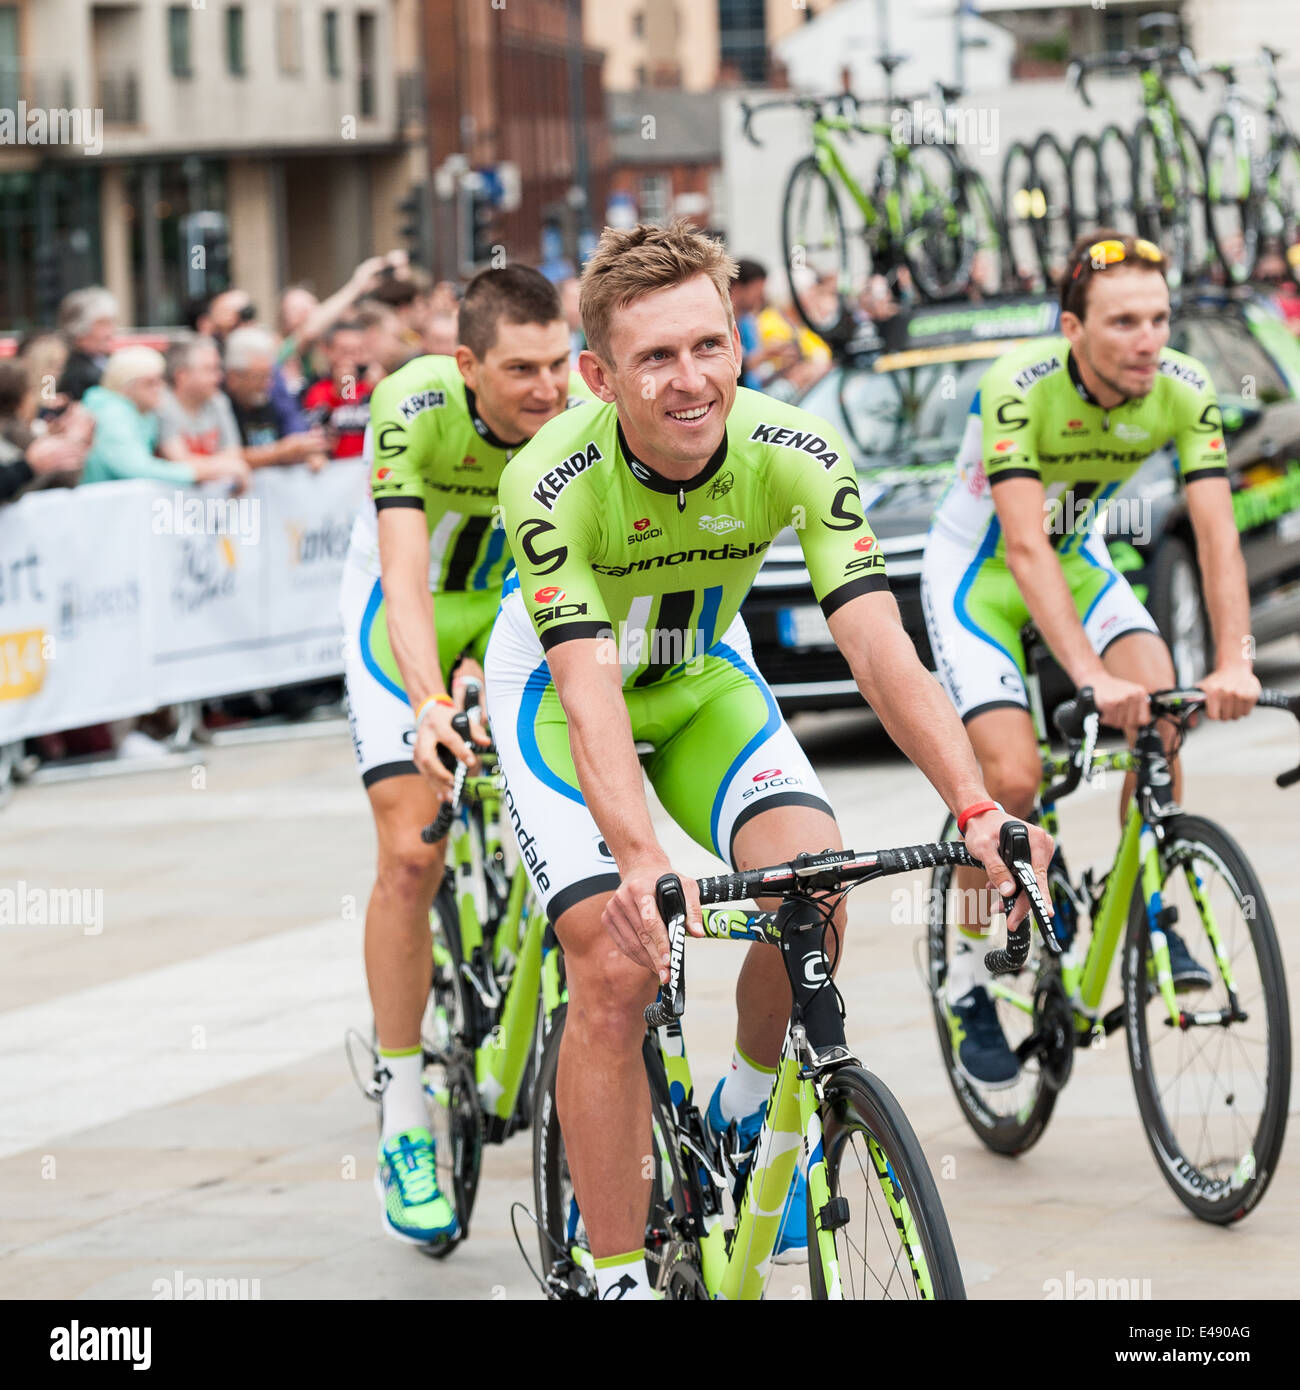 Cannondale Bike Stock Photos   Cannondale Bike Stock Images - Alamy ae371e4d6